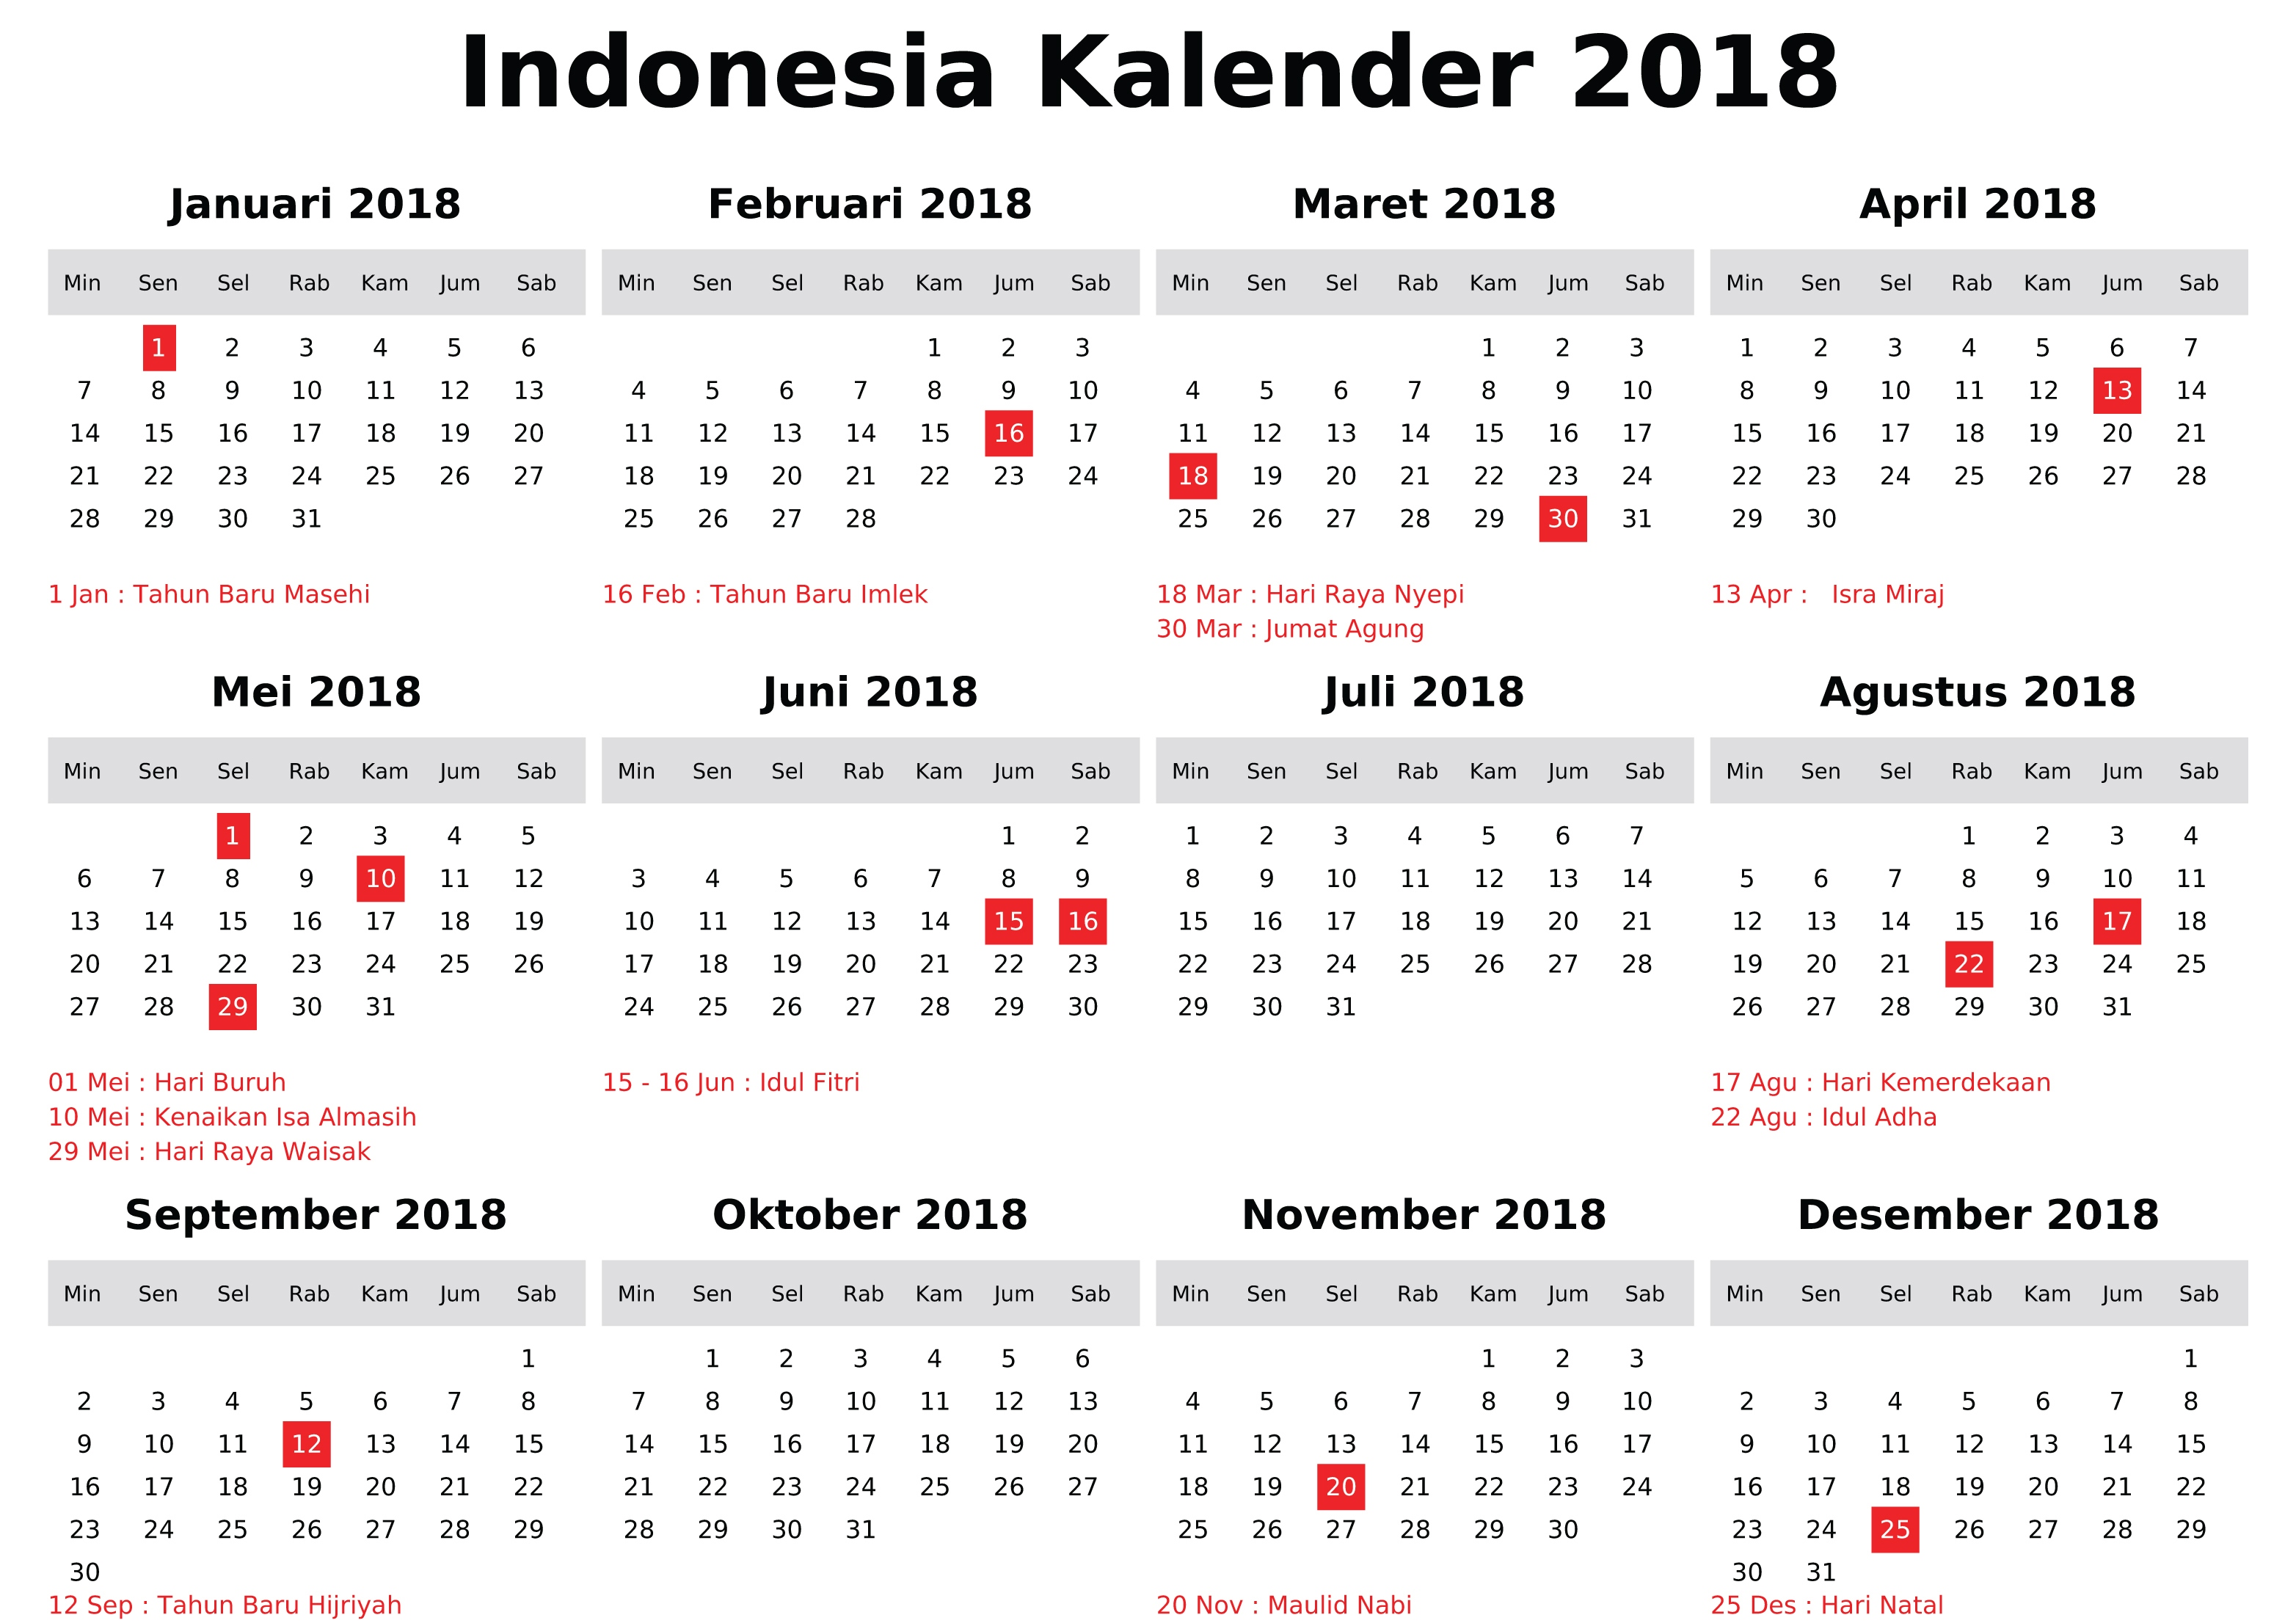 Holidays of Indonesia Kalender 2018